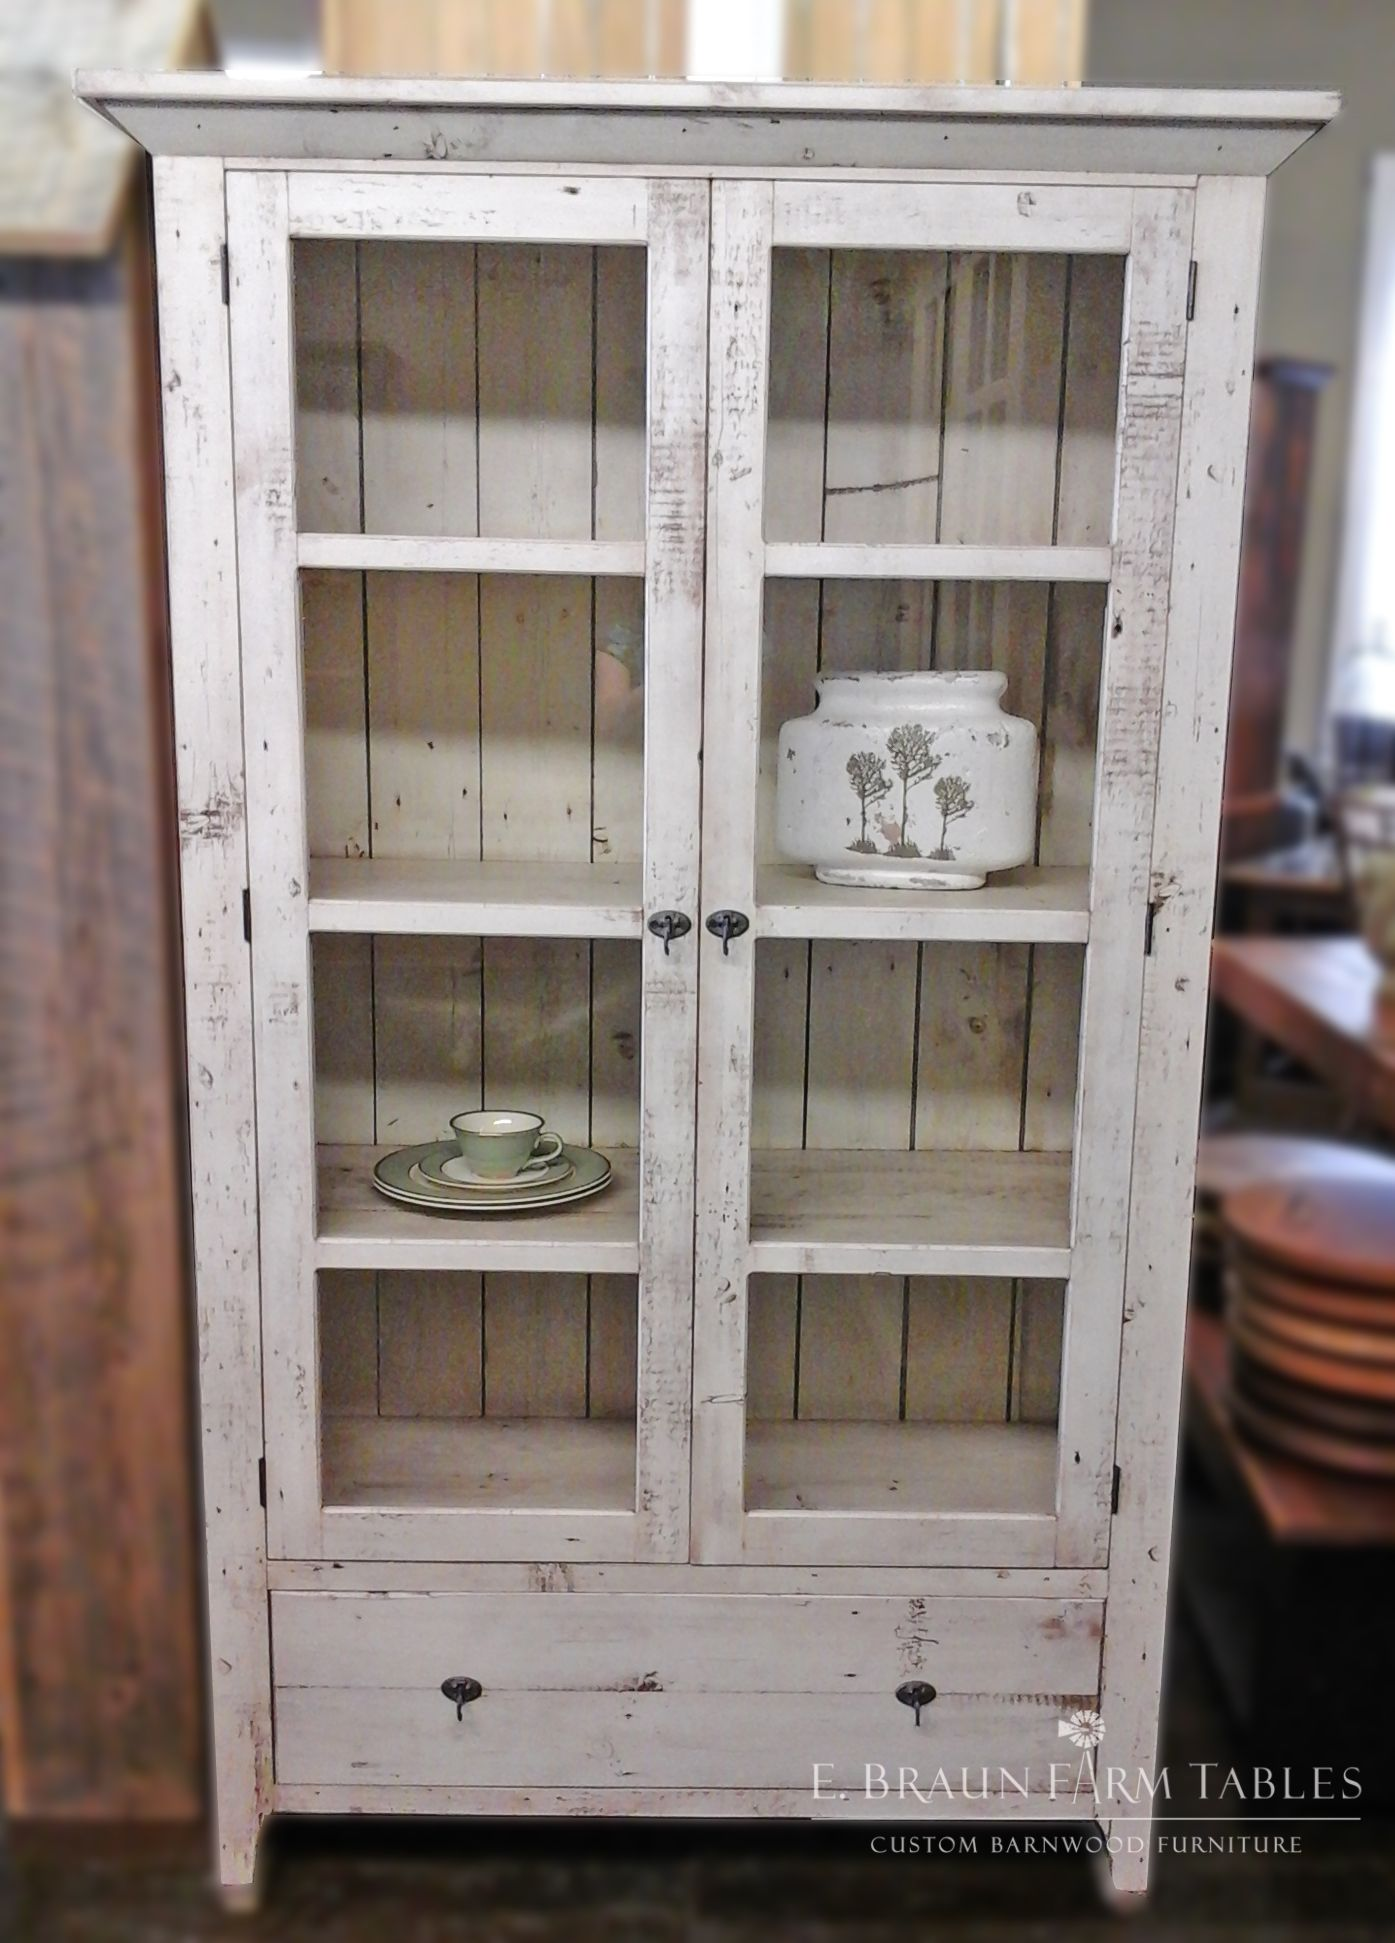 glass-front curio cabinet handcrafted using reclaimed barn wood ...